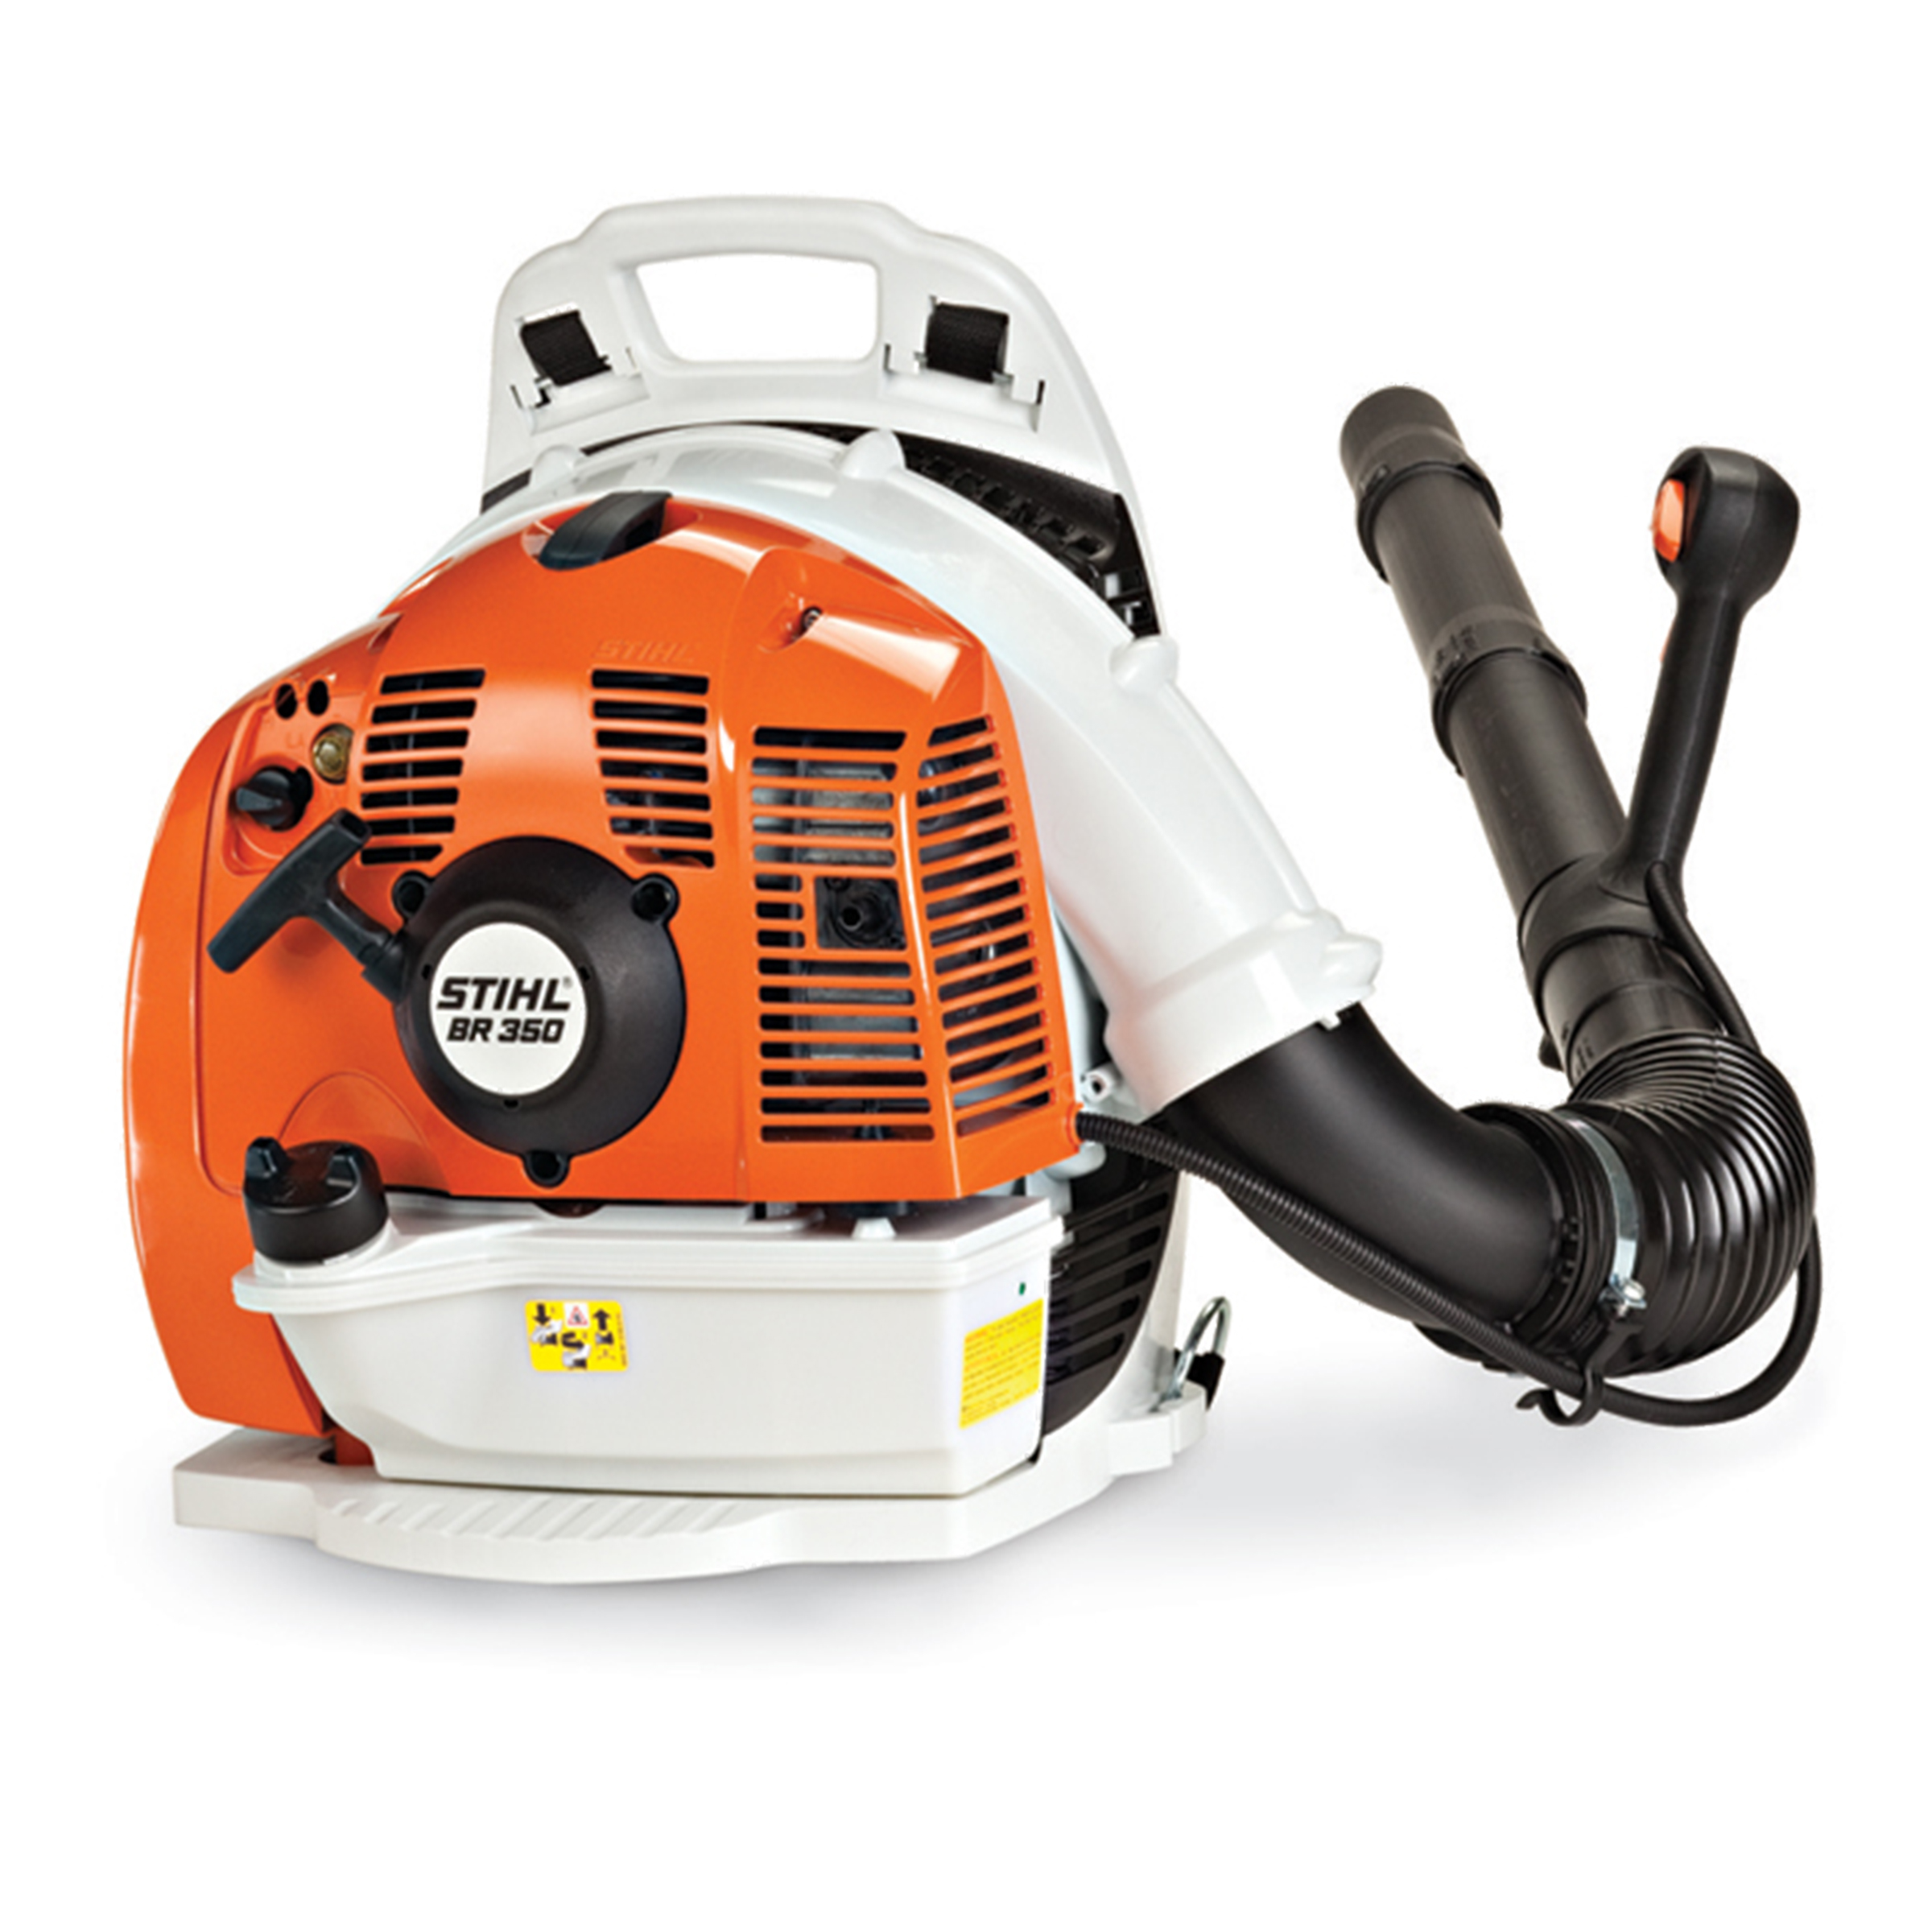 Stihl Power Blowers : Leaf blowers stihl backpack blower